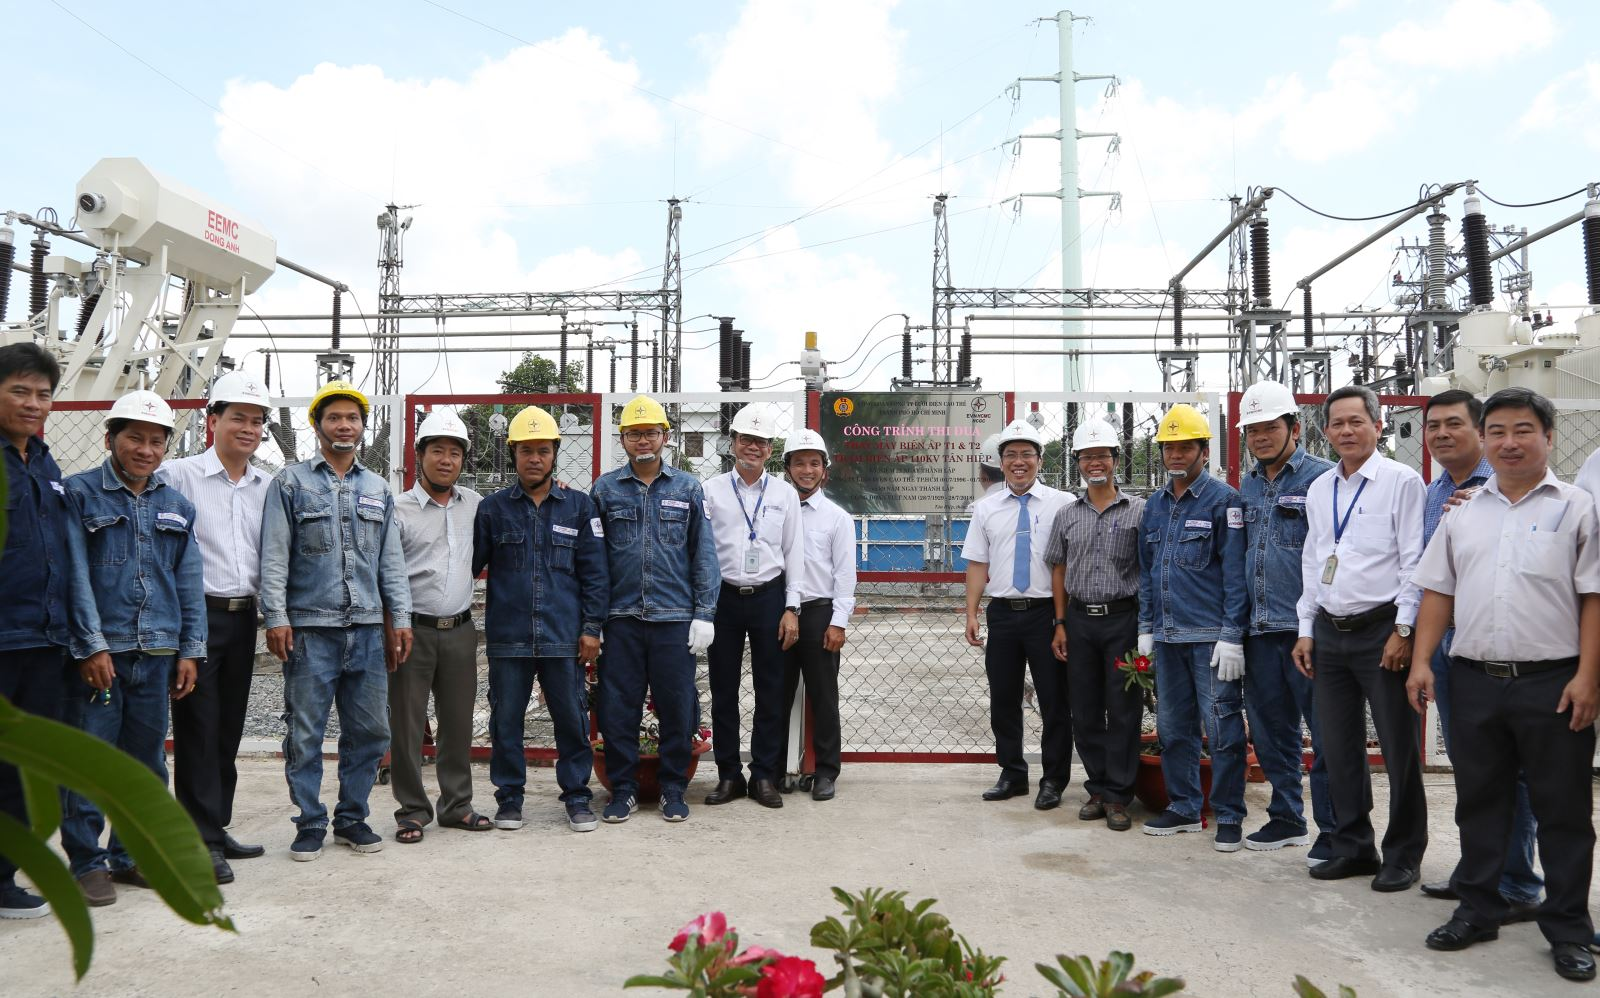 Ceremony of emulating the Tan Hiep 110kV substation